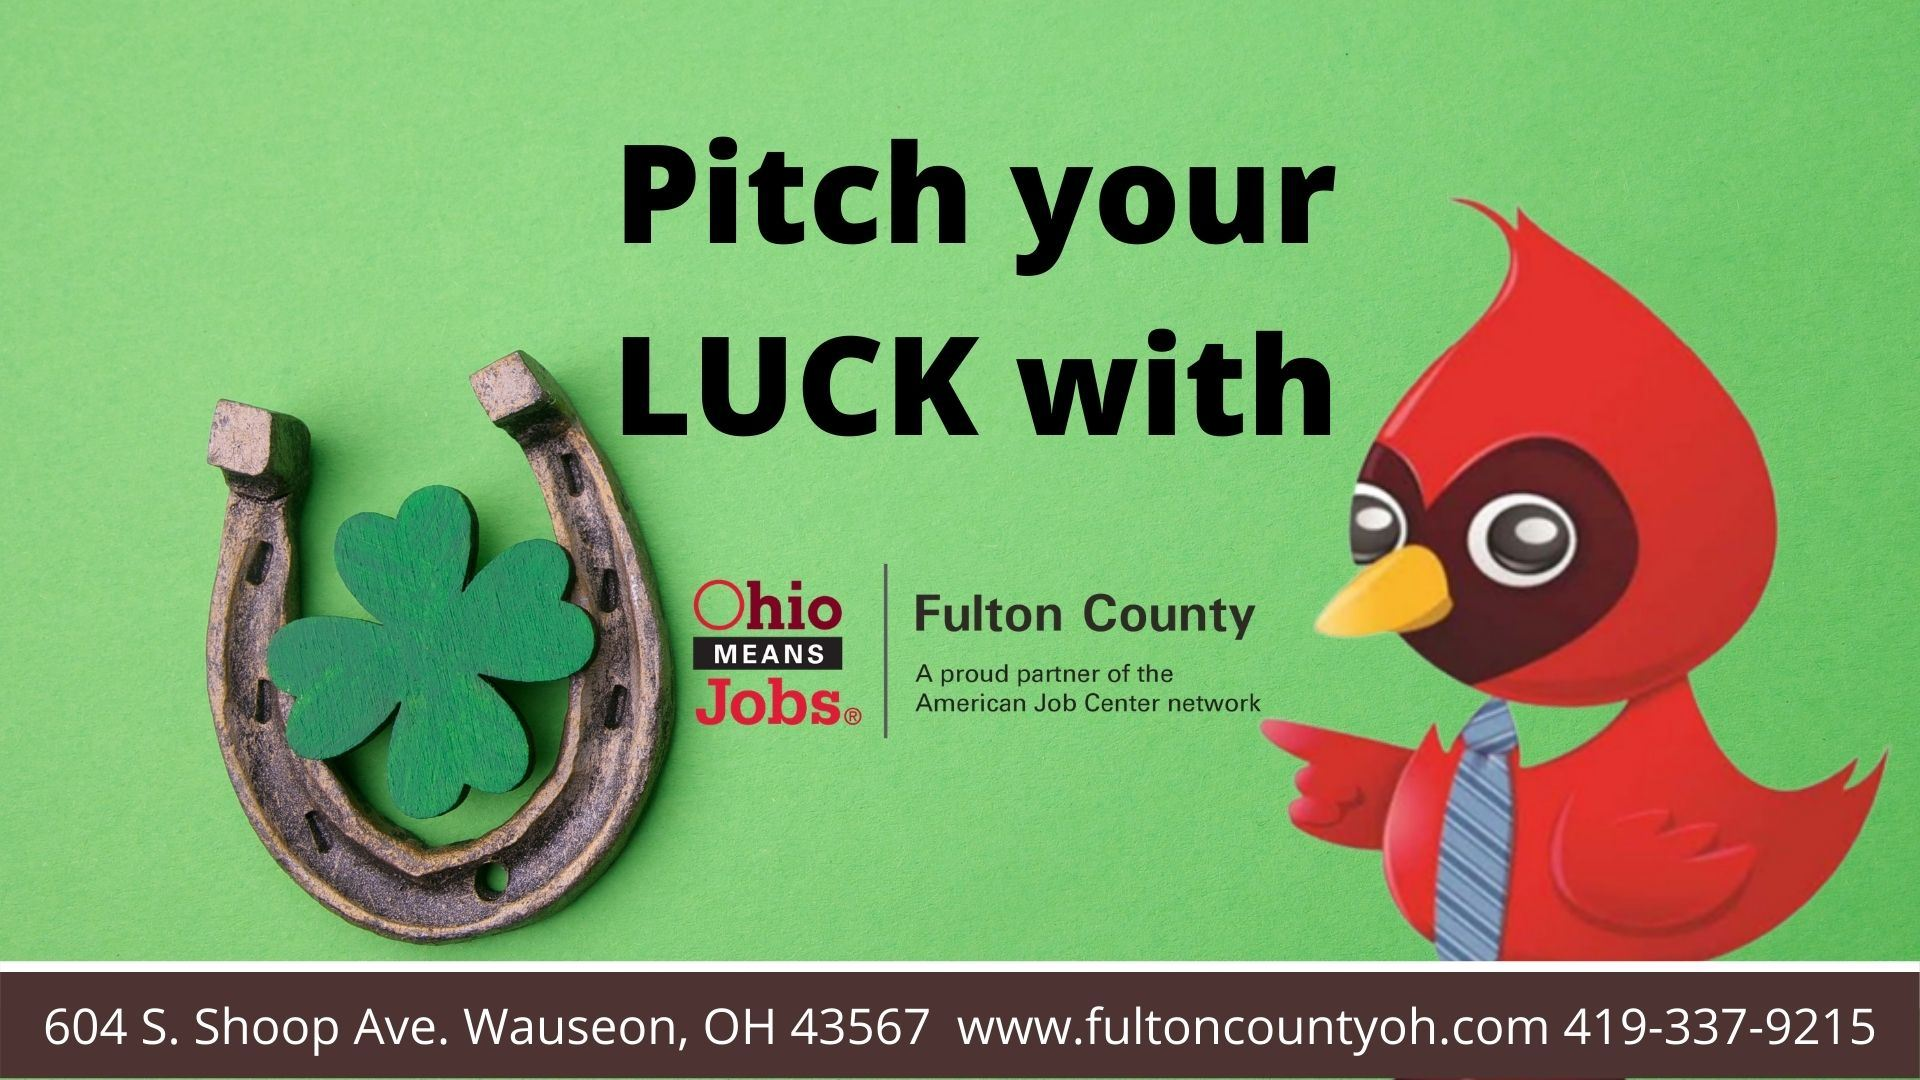 Pitch your LUCK with